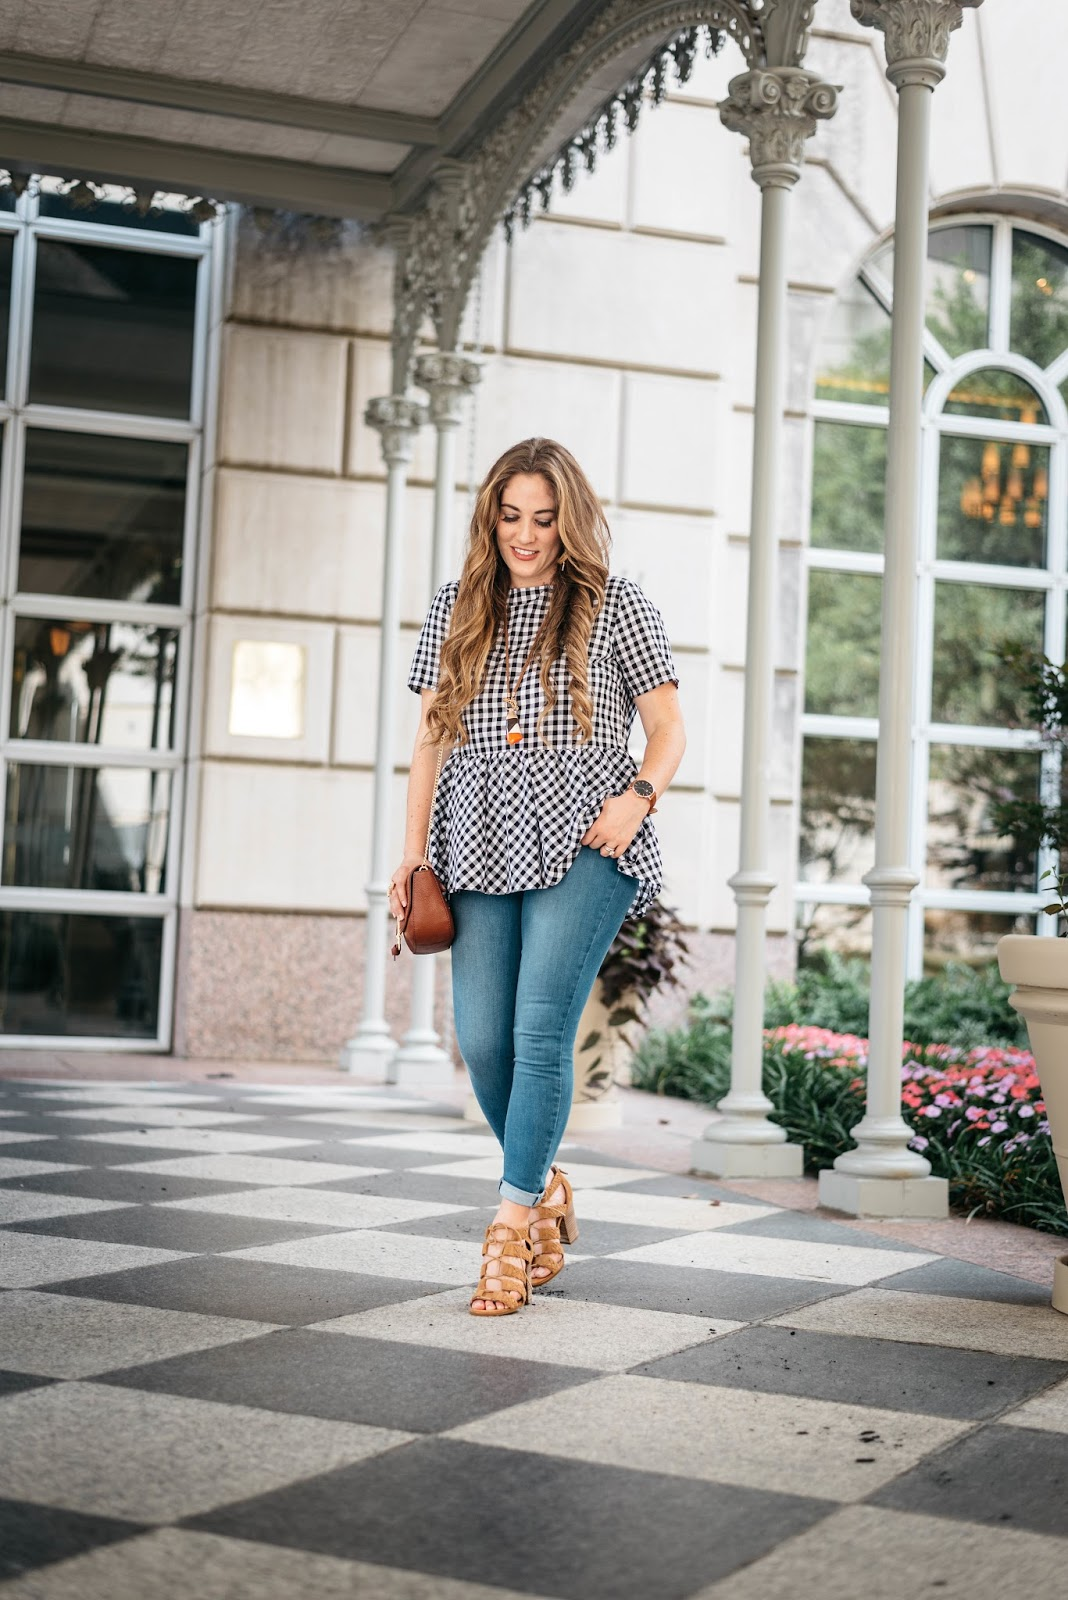 Why You Should Try Lace Bralettes Top This Summer by fashion blogger Laura of Walking in Memphis in High Heels